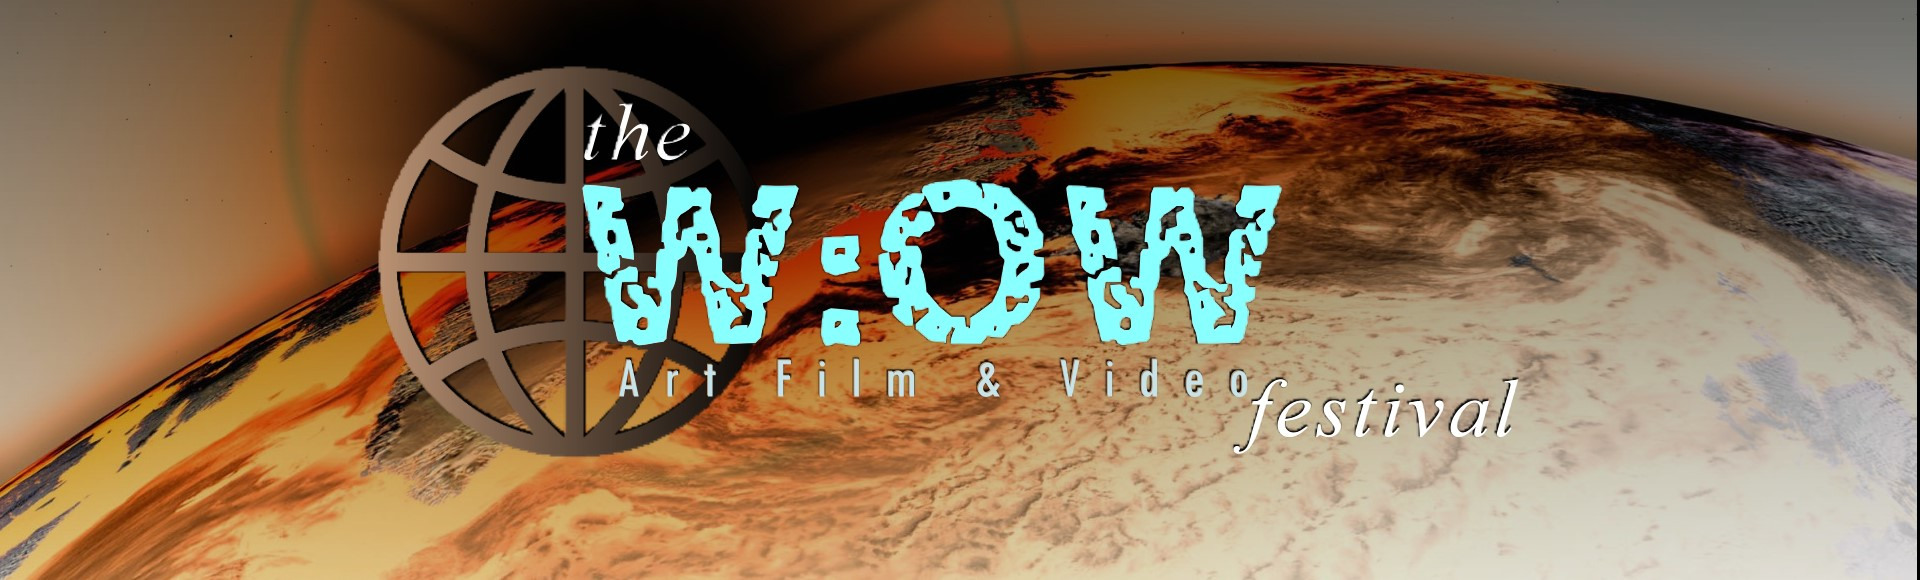 The W:OW Art Film & Video Festival - -    We Are One World!